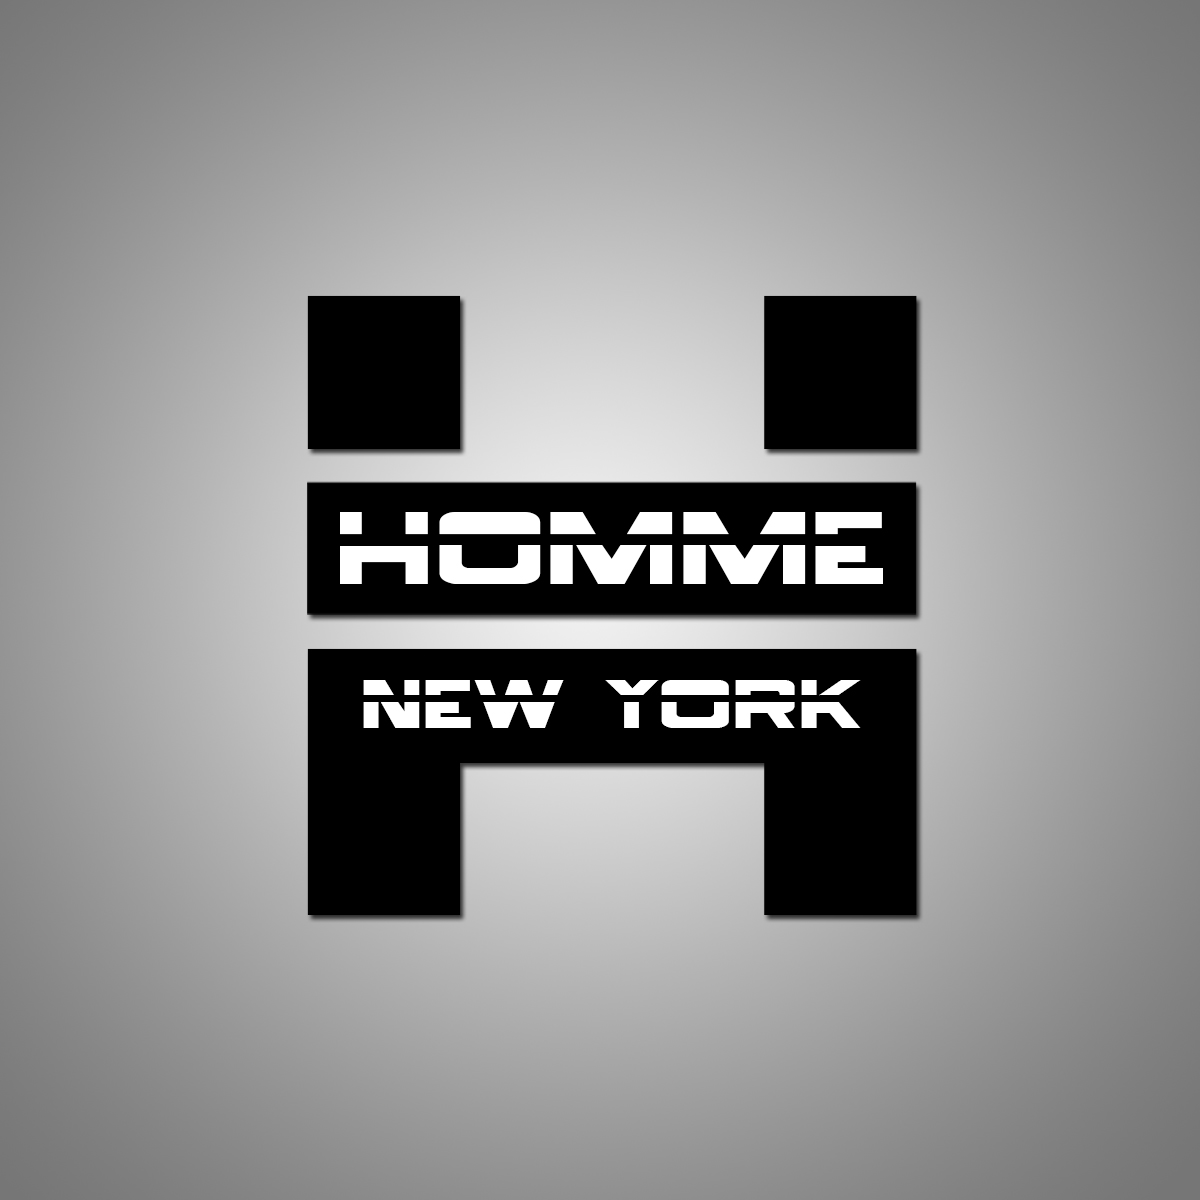 Logo Design by Viral Ramani - Entry No. 103 in the Logo Design Contest Artistic Logo Design for HOMME | NEW YORK.